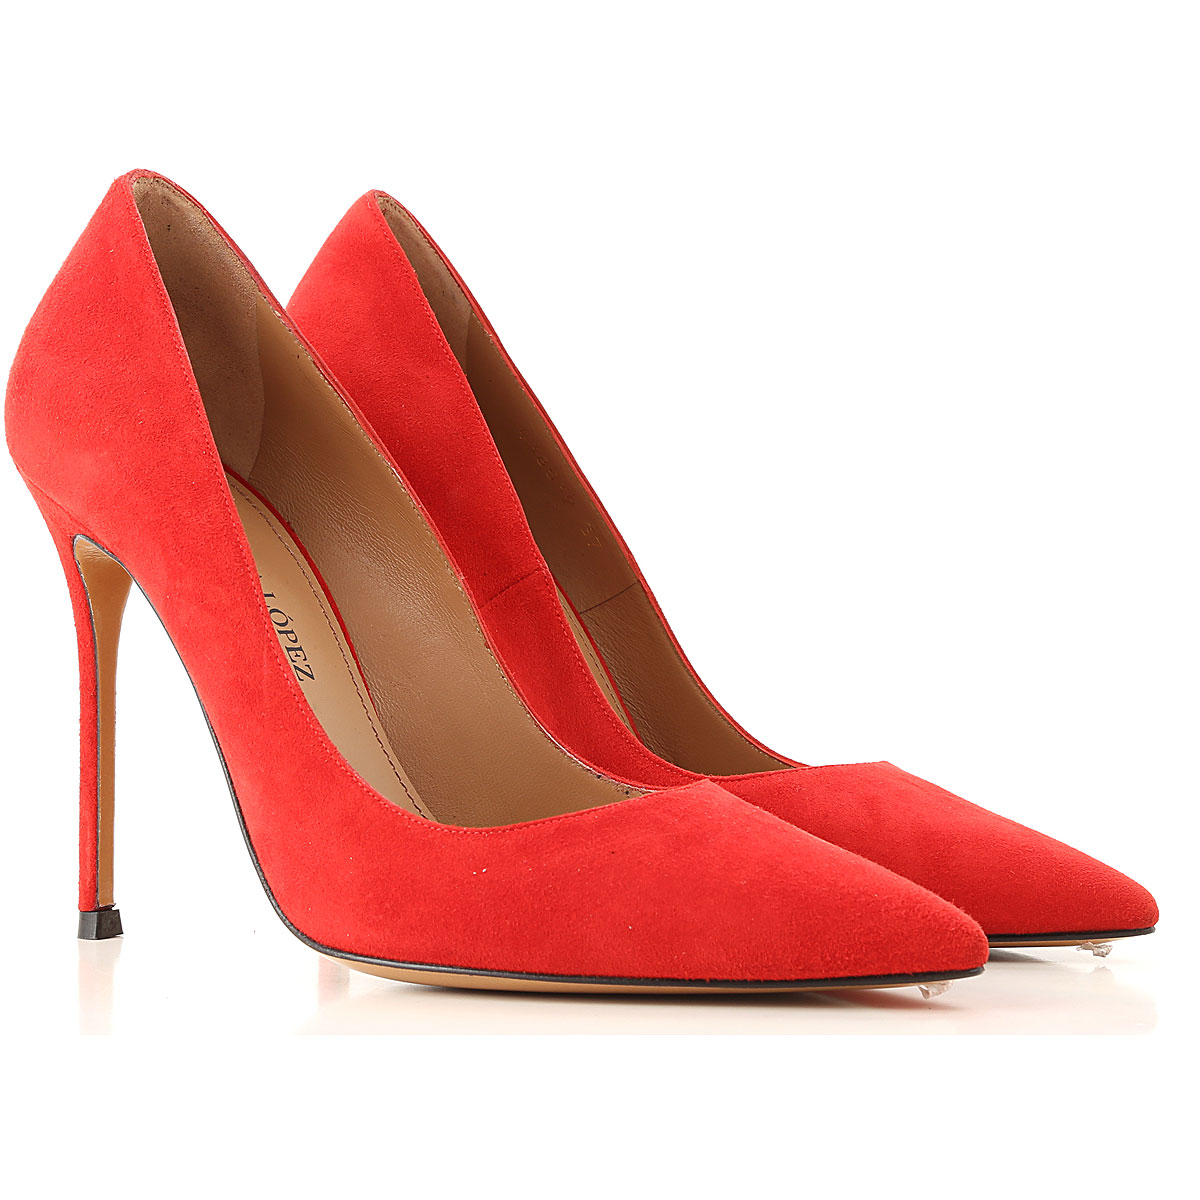 Image of Pura Lopez Pumps & High Heels for Women, Red, Suede leather, 2017, 7 8